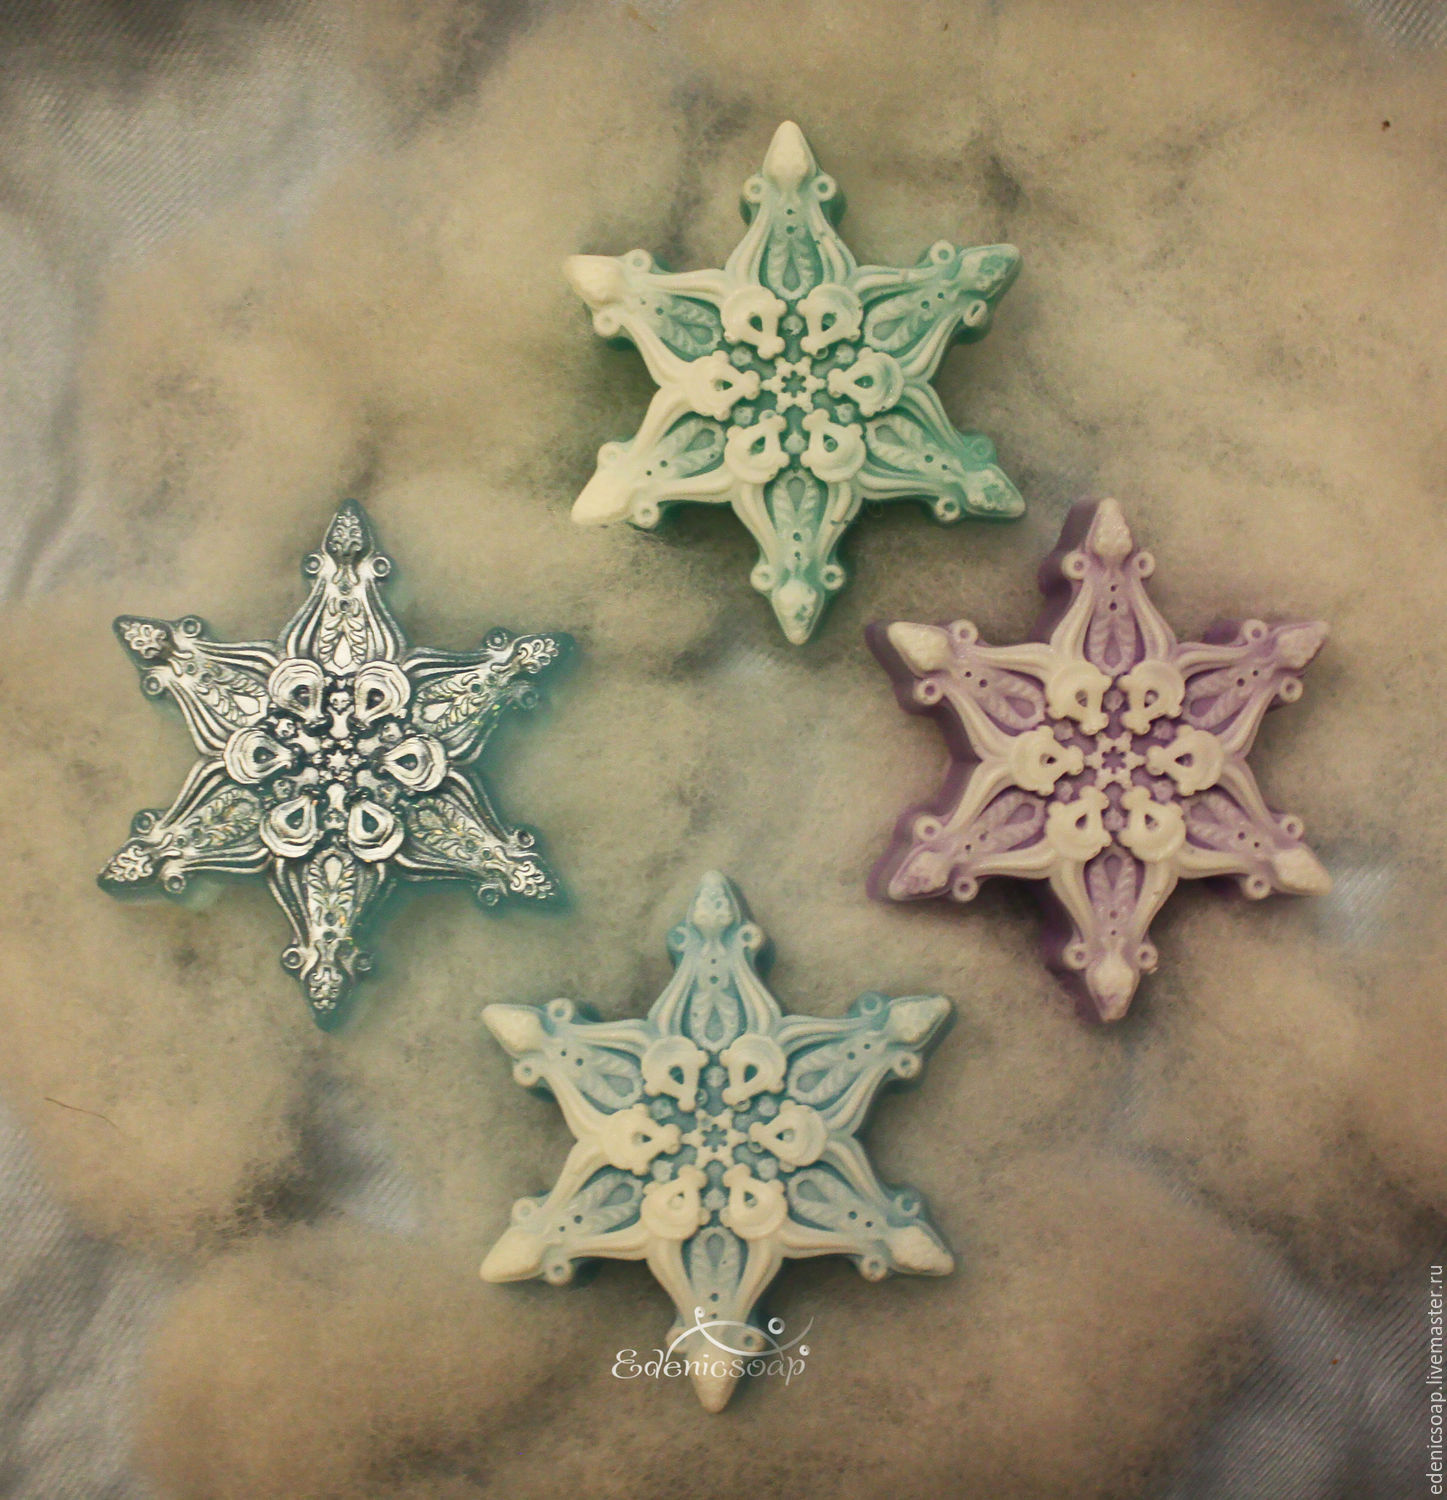 Soap delicate snowflakes. NEW YEAR. The handmade gifts.Edenicsoap.